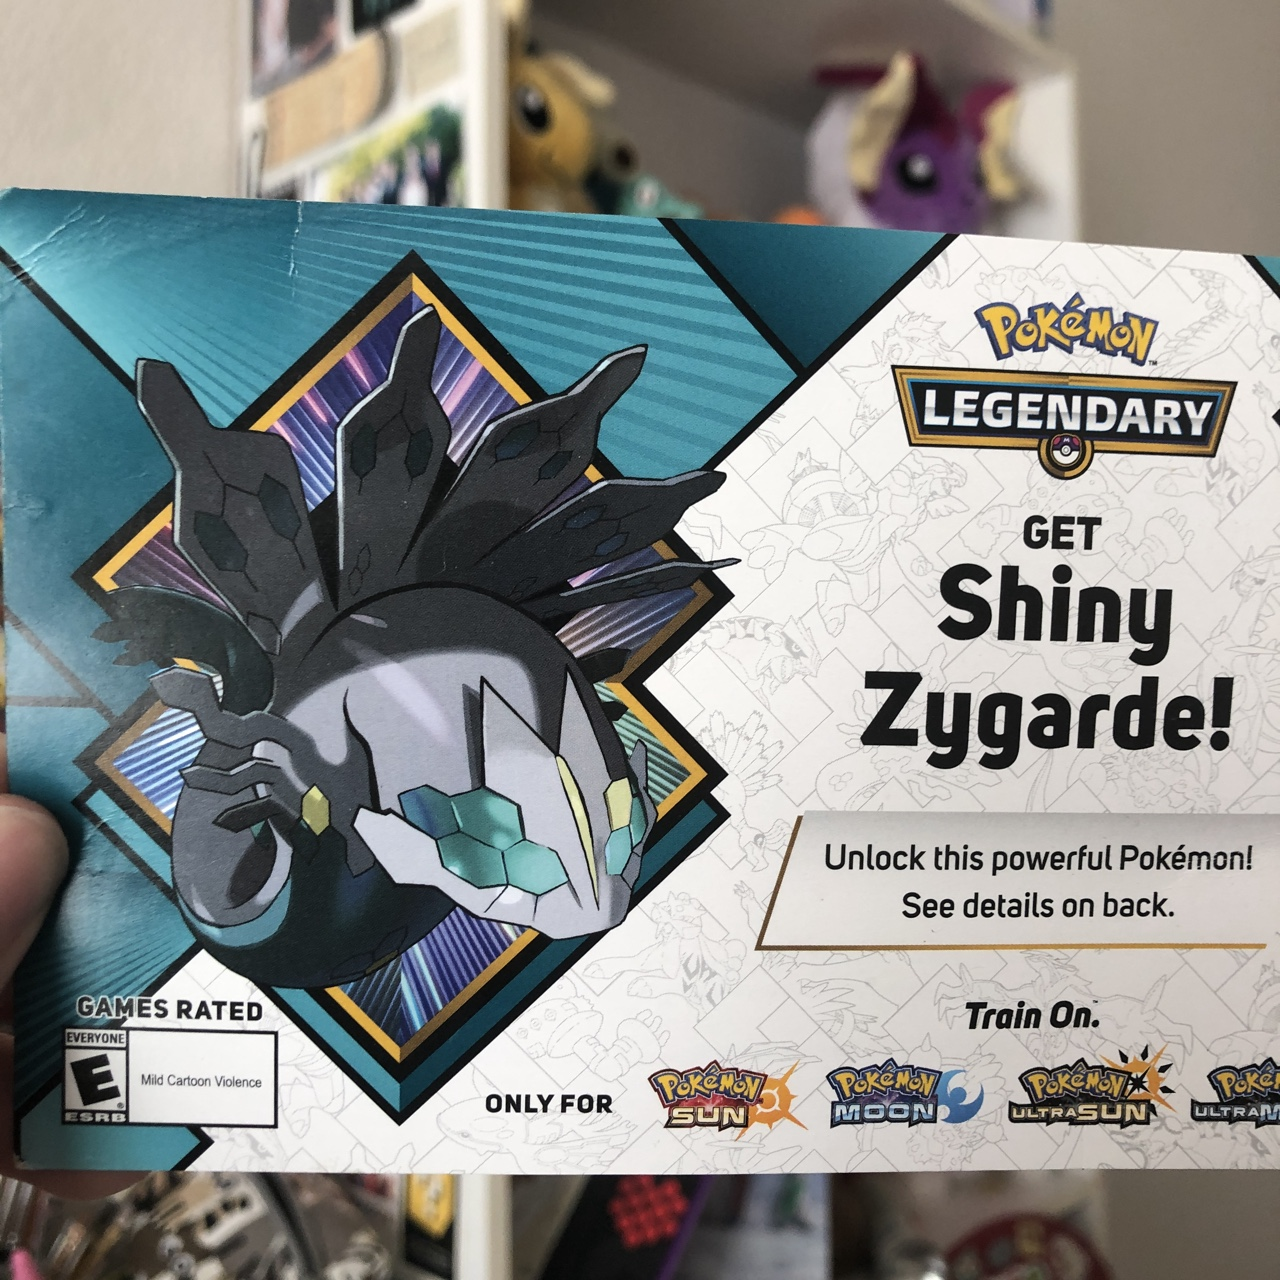 LAST DAY TO CLAIM $1 Shiny Zygarde Pokemon Code